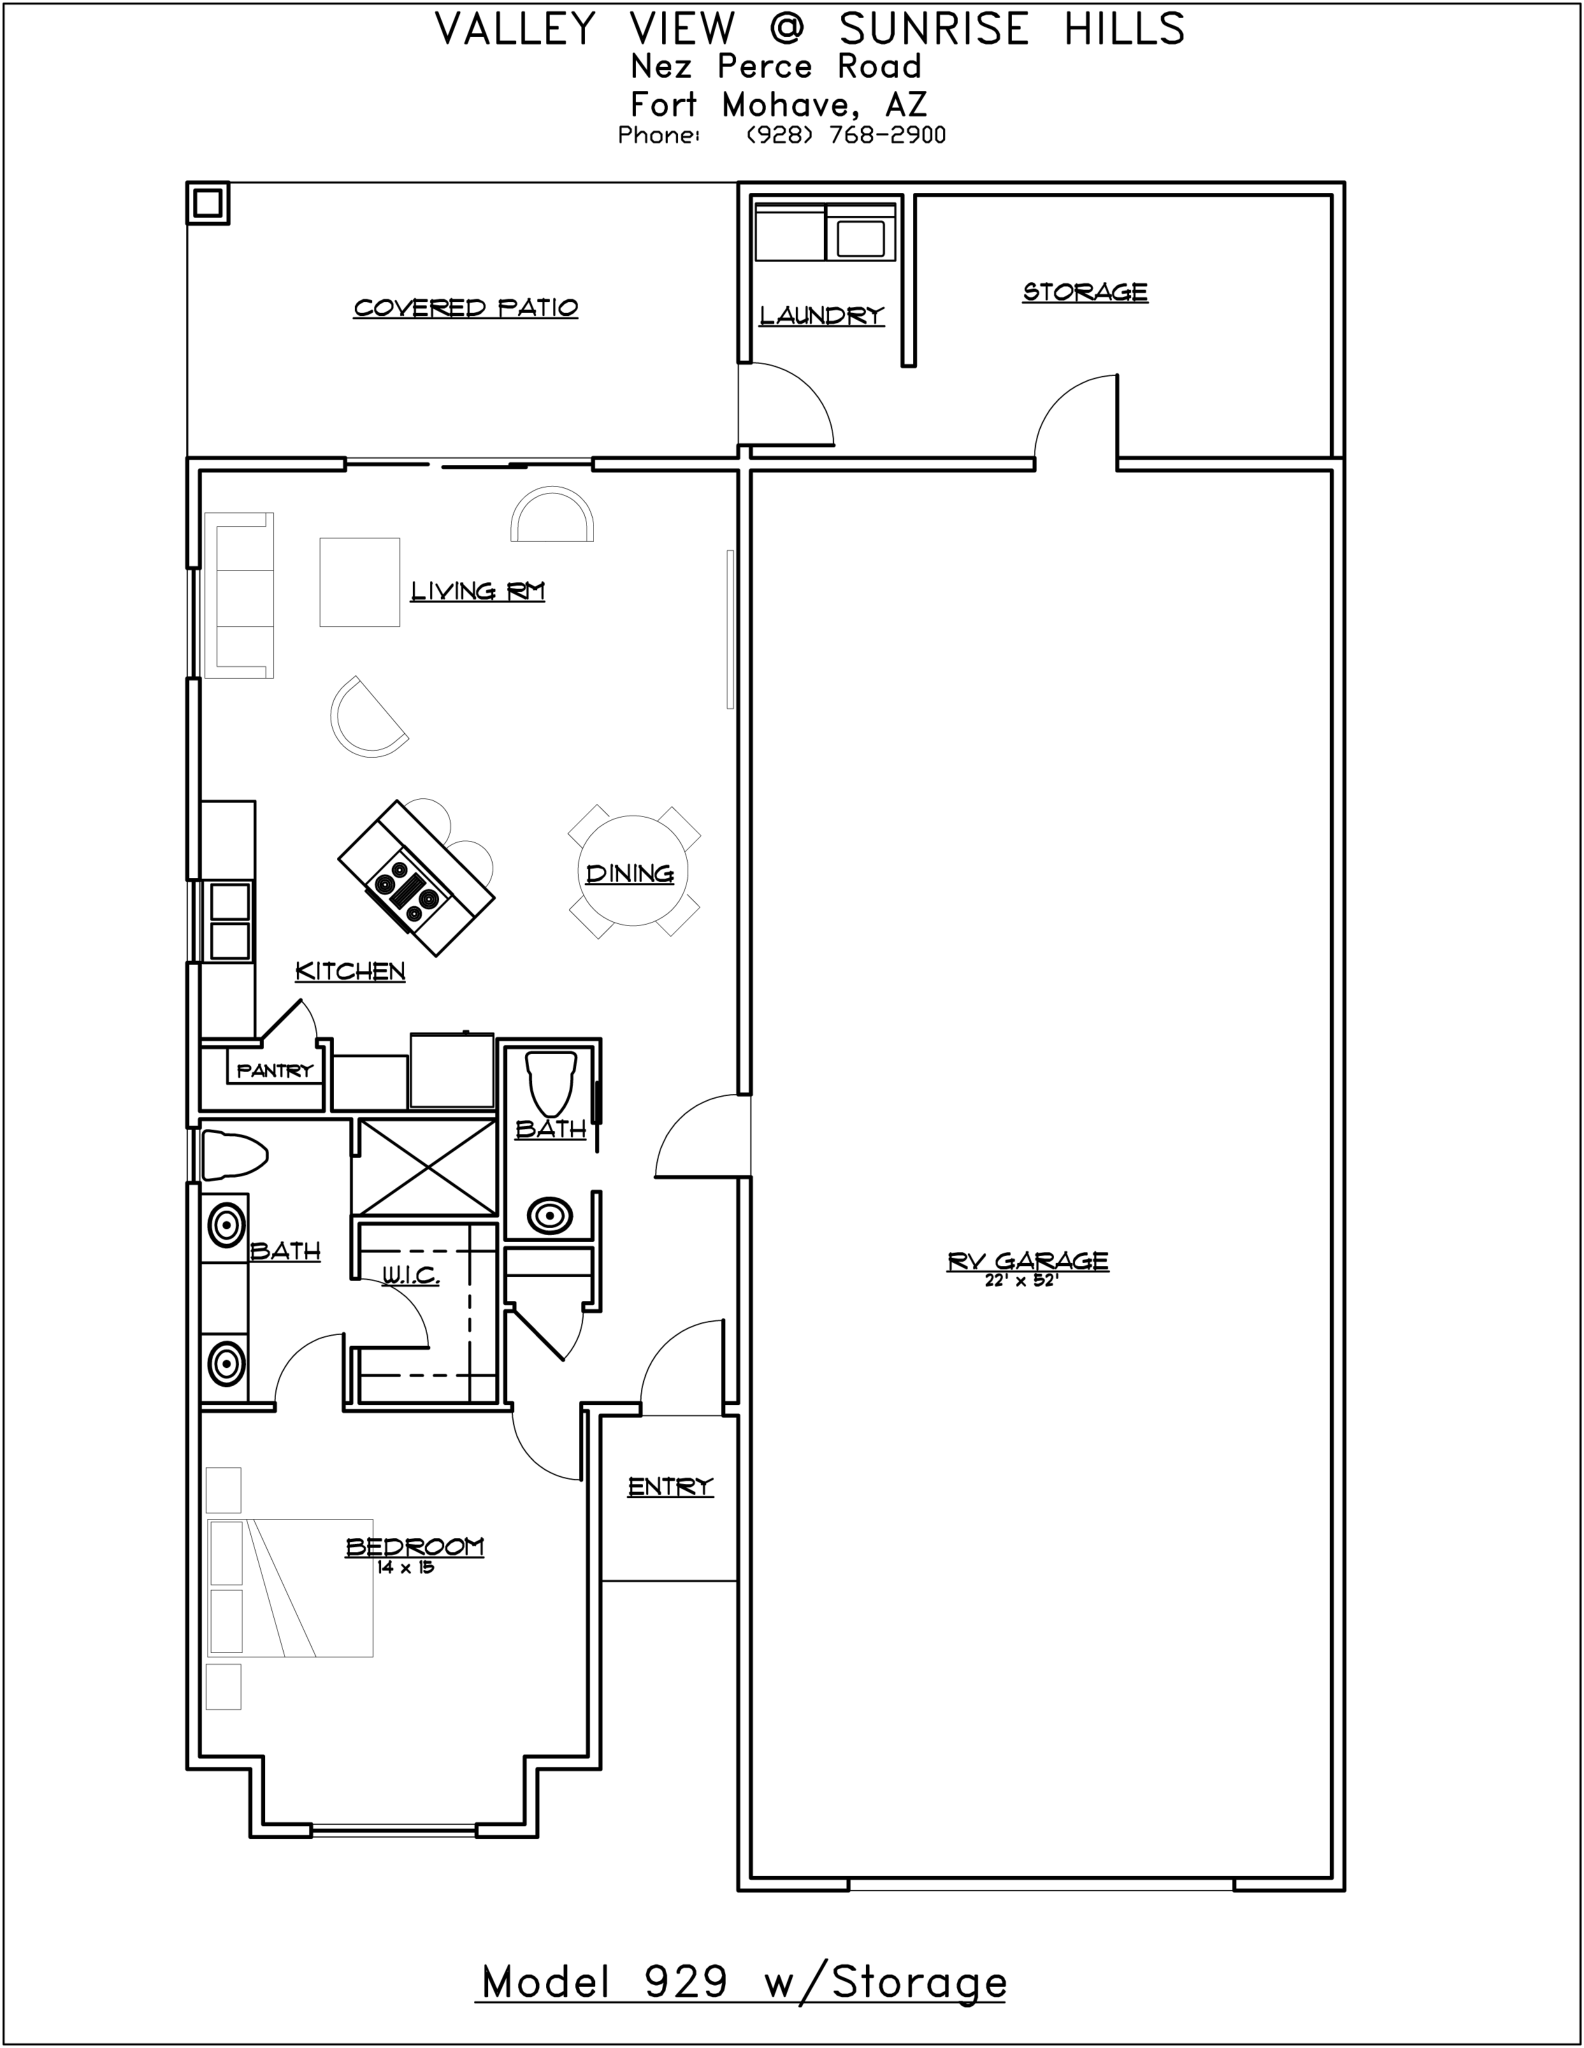 Garage Apartment Plans With Rv Storage Arizona Rv Homes Is Valley View Sunrise Hills Custom Built